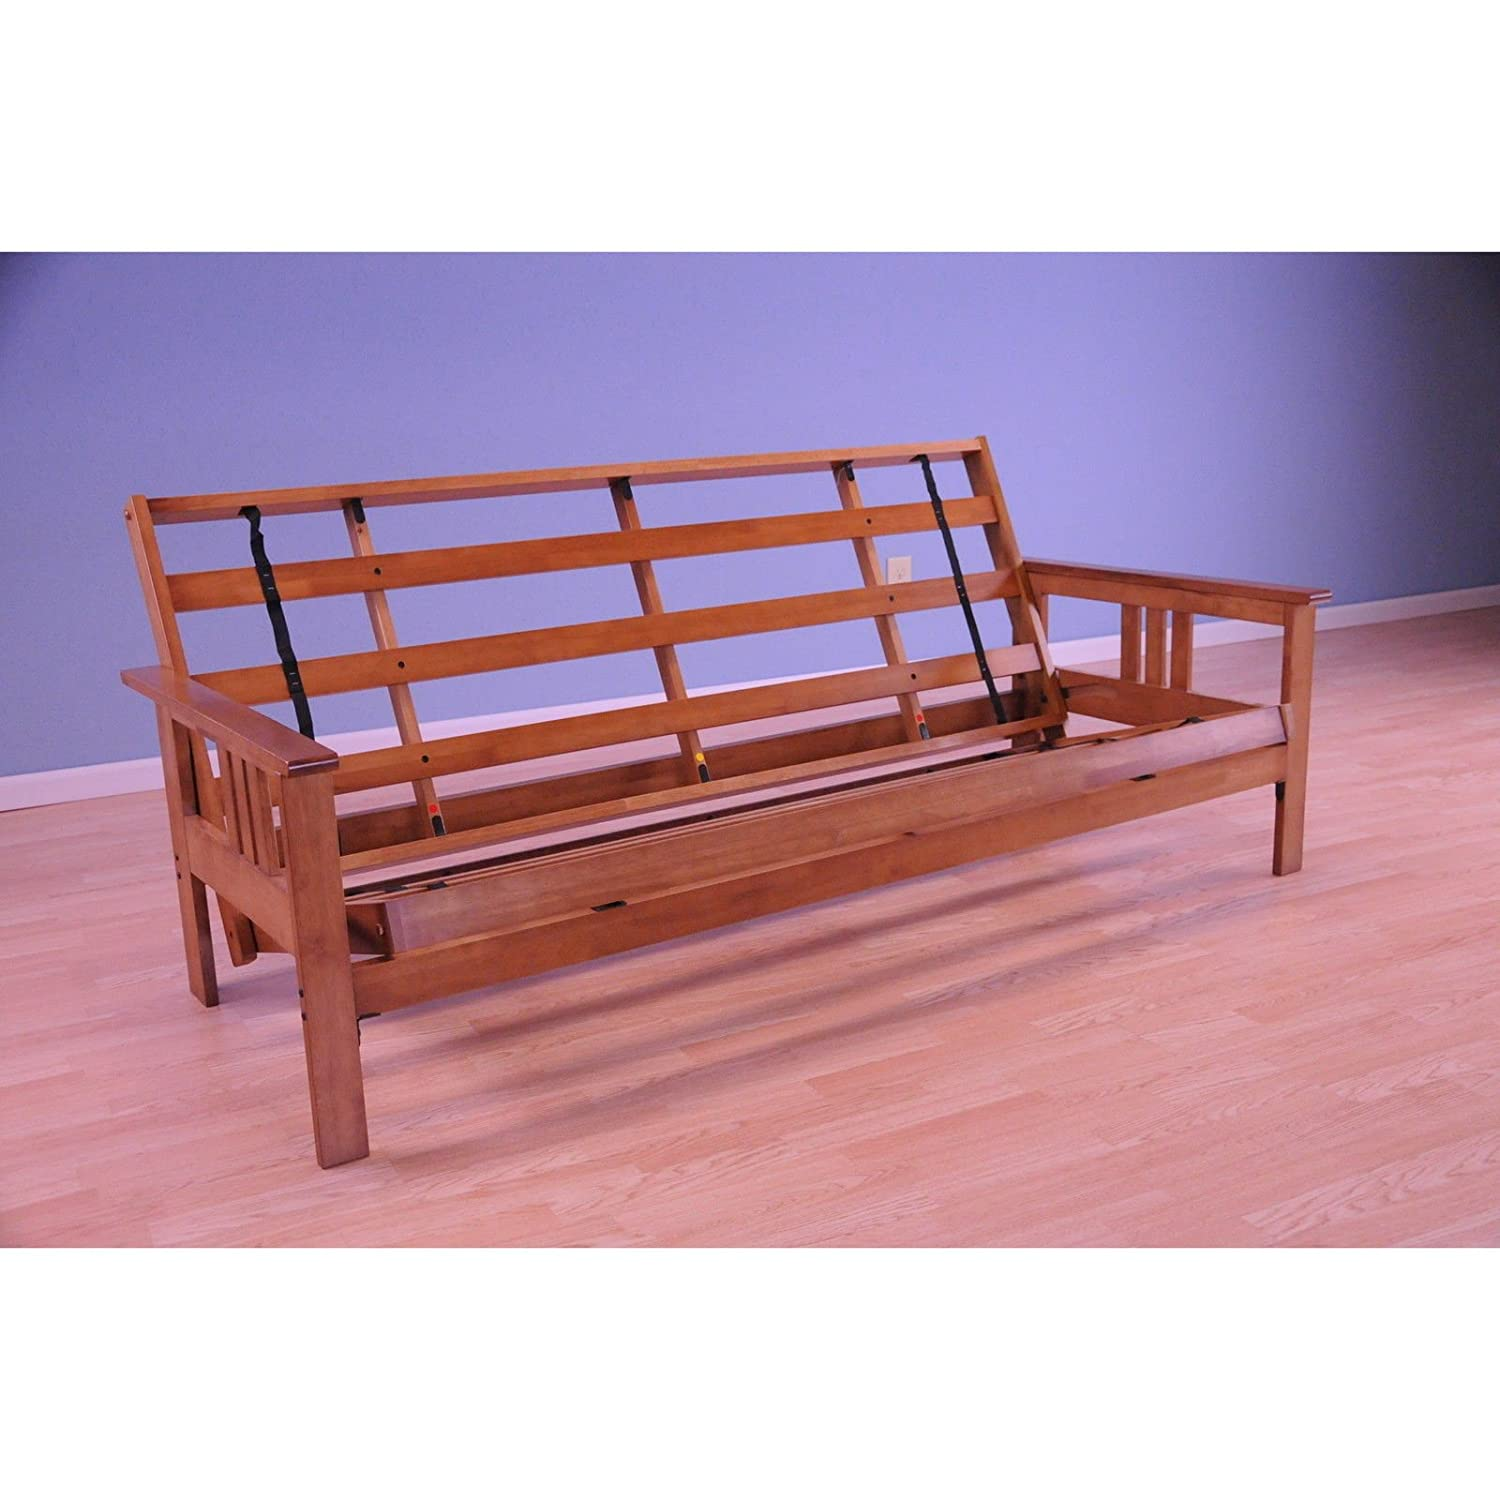 Amazon.com: Monterey Futon Frame in Barbados Finish: Kitchen & Dining